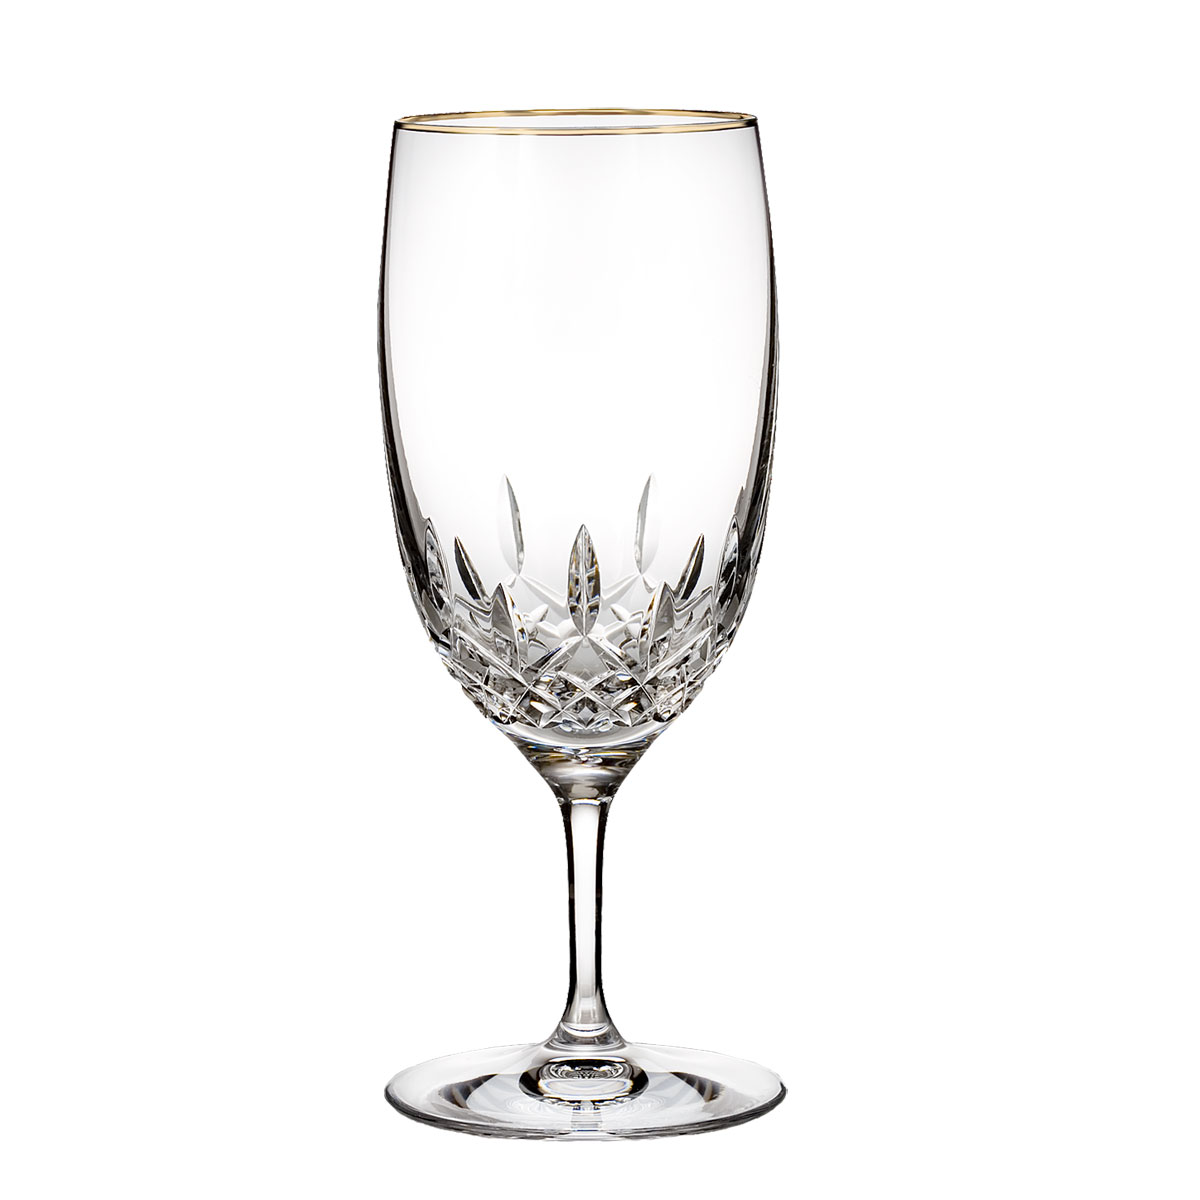 Waterford Crystal, Lismore Essence Gold Crystal Iced Beverage, Single